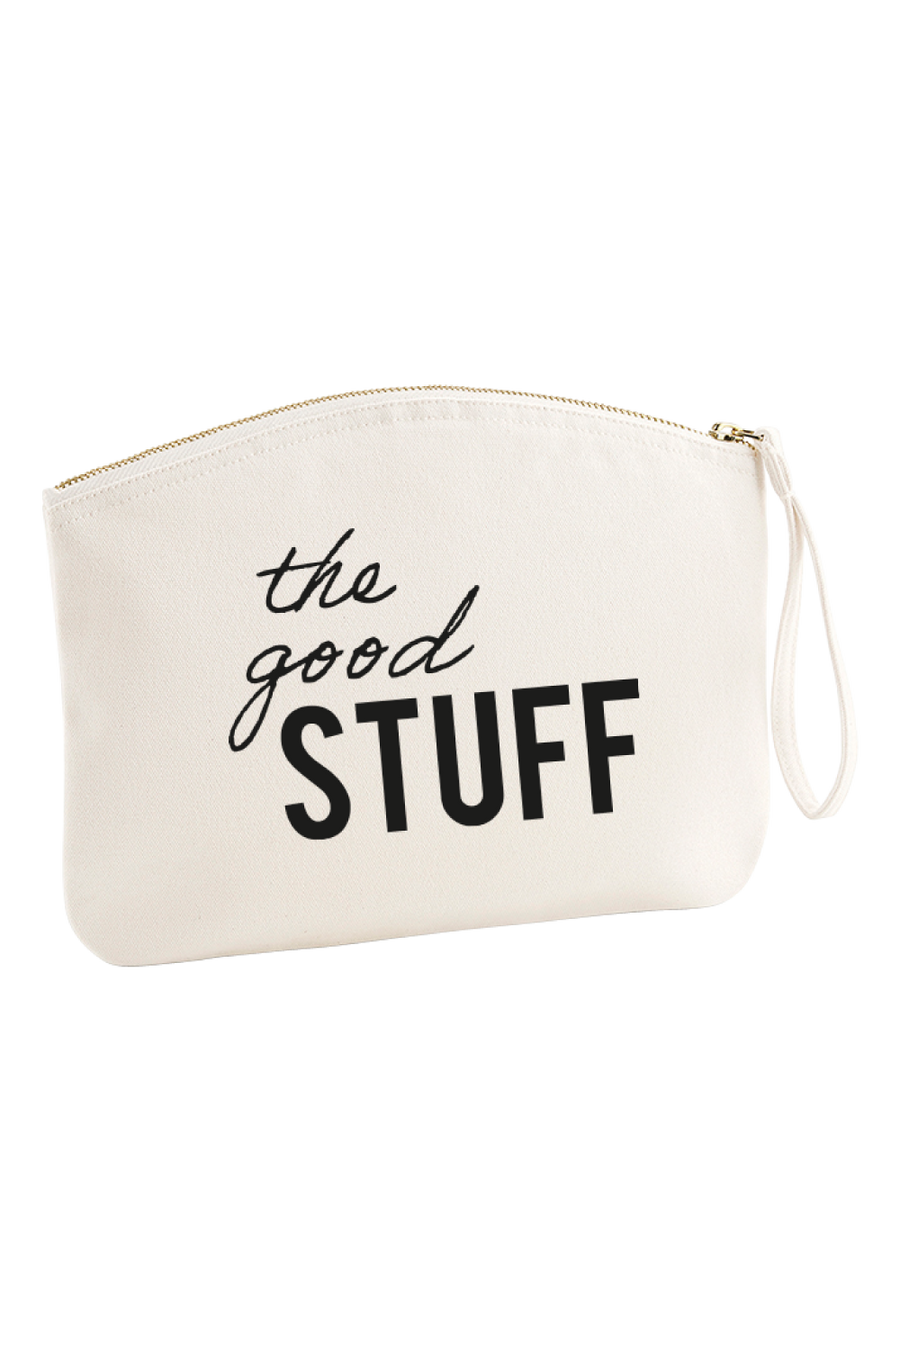 The good stuff - Joh Clothing